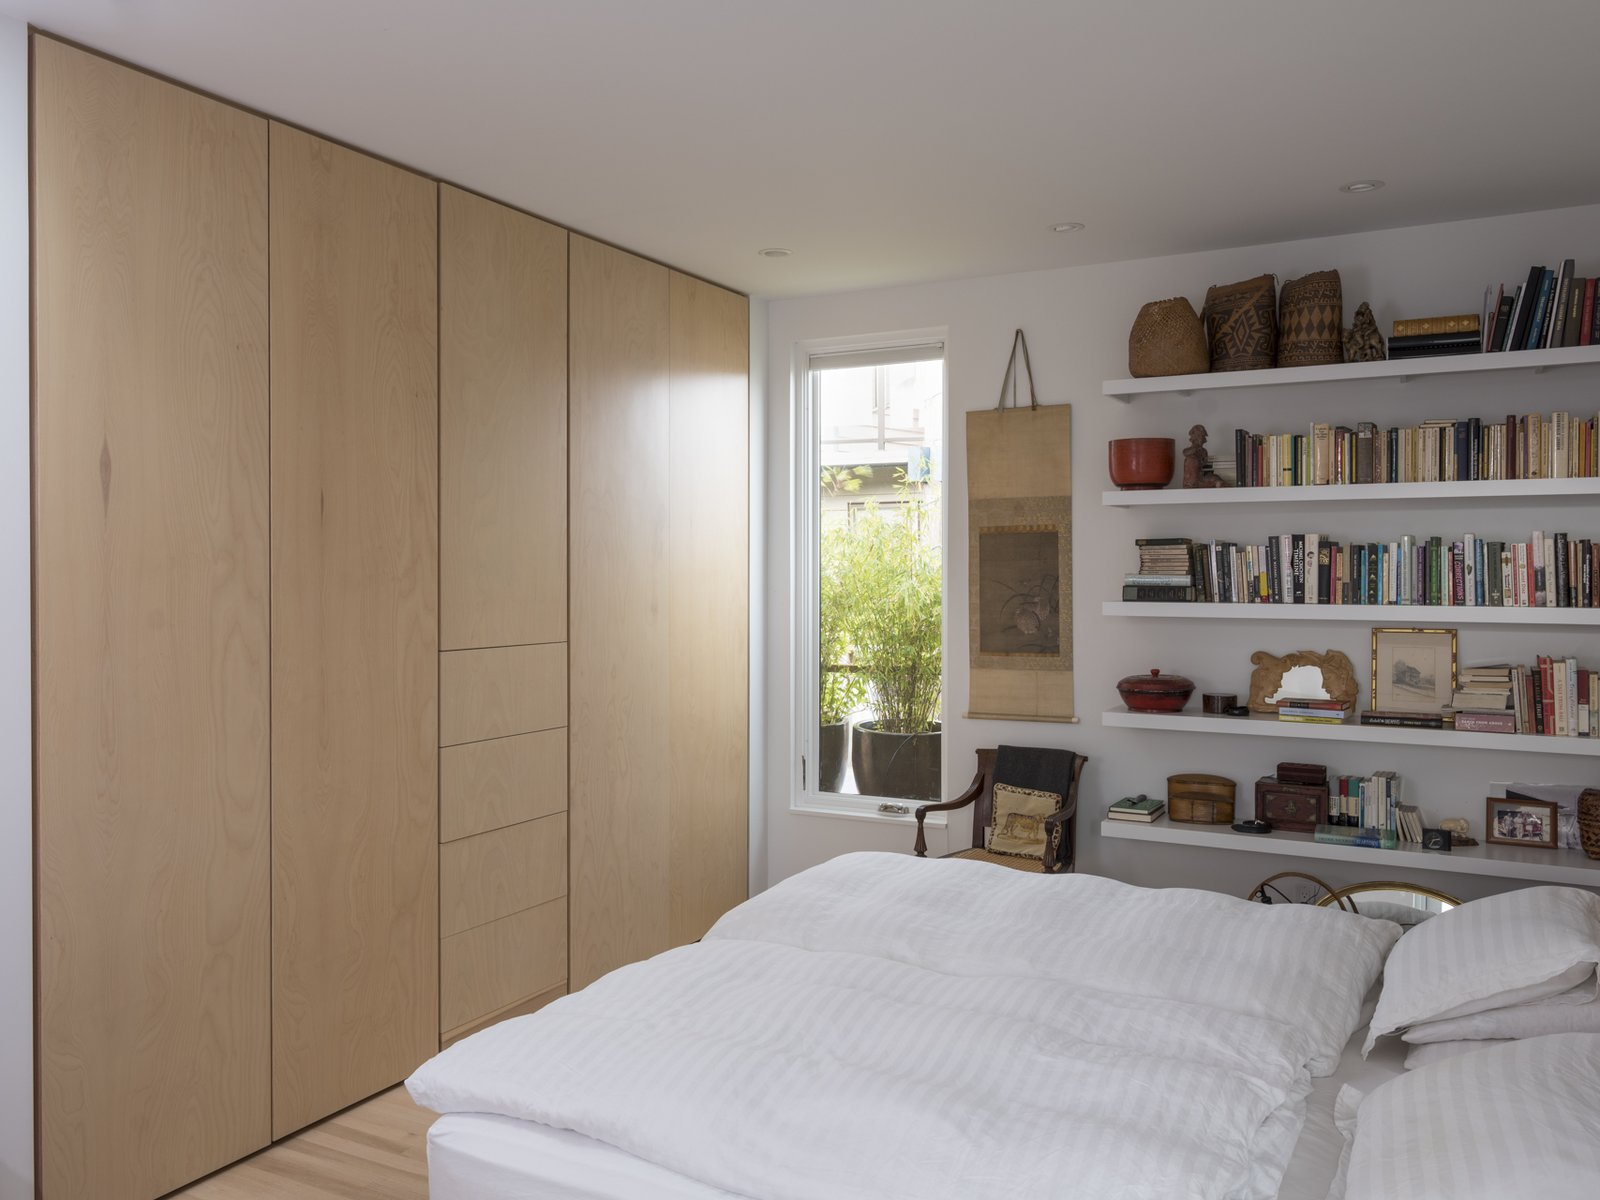 Bedroom, Light Hardwood, Bed, Bookcase, Wardrobe, Storage, Recessed, and Chair Master Bedroom  Best Bedroom Wardrobe Bookcase Photos from Lake Union Floating Home